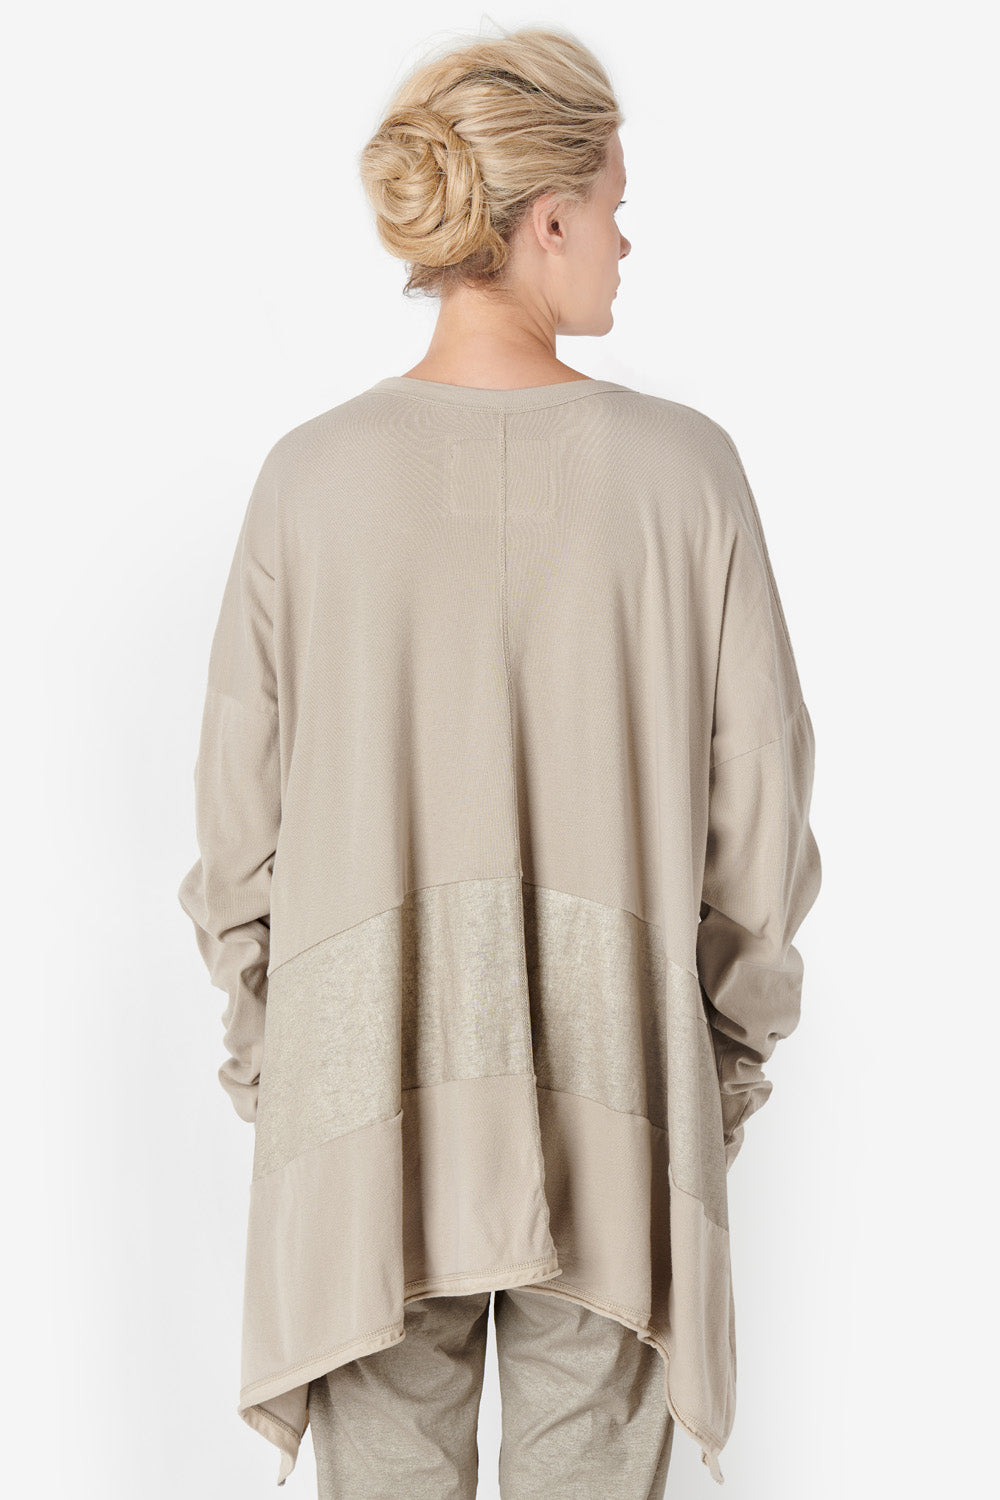 Alabama Chanin Natalie's Pullover Women's Oversized Top with Drop Shoulder with Hand-Painted Stripe and Pockets in Tan